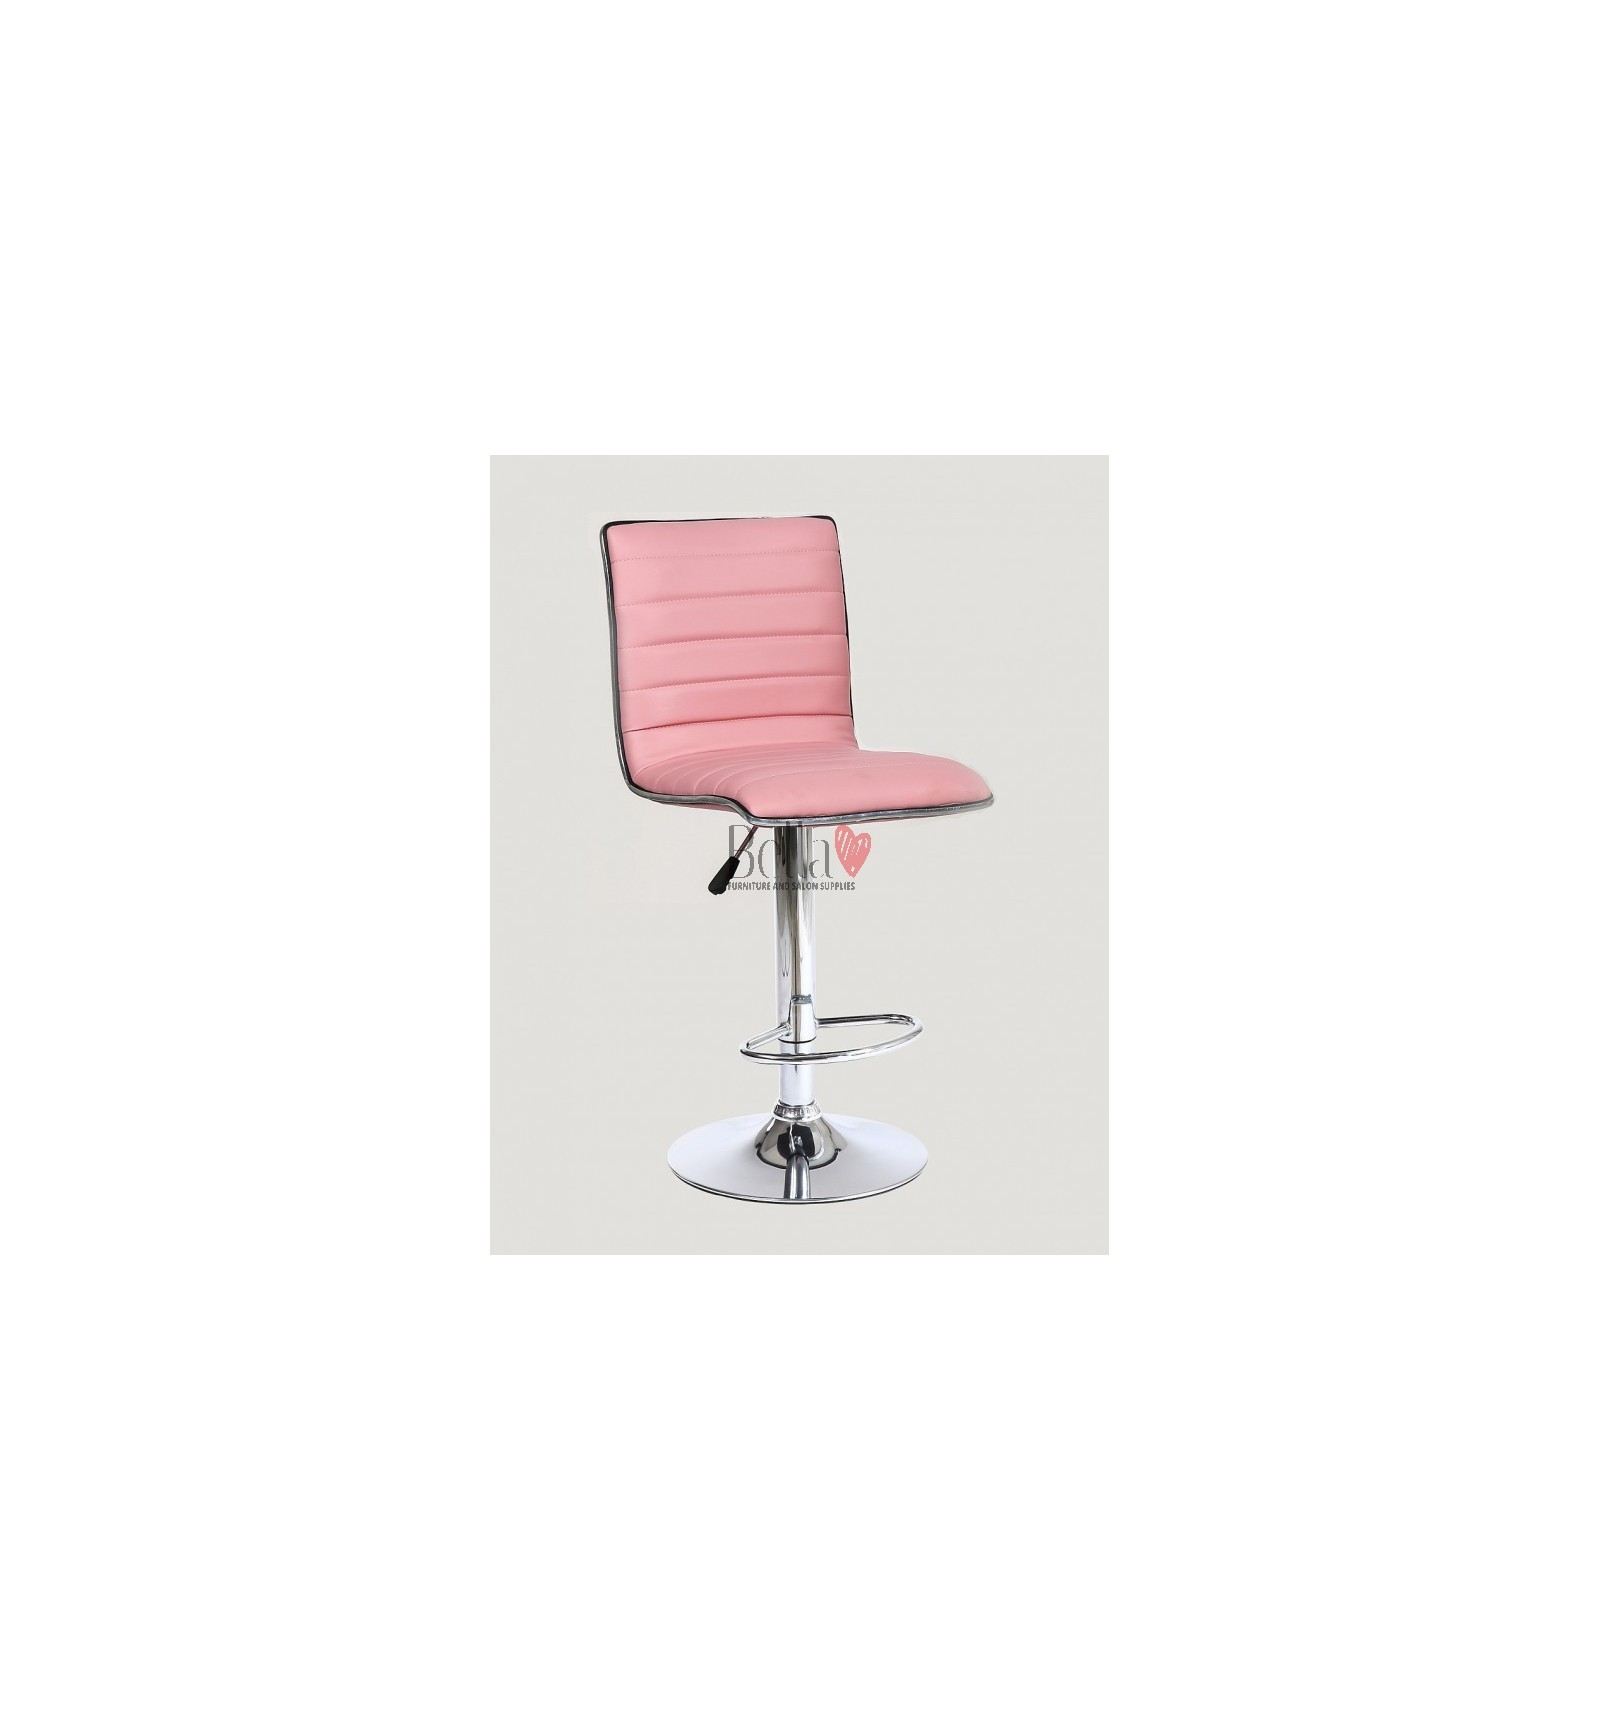 pink stool chair modern swivel high makeup chairs for salon and beauty